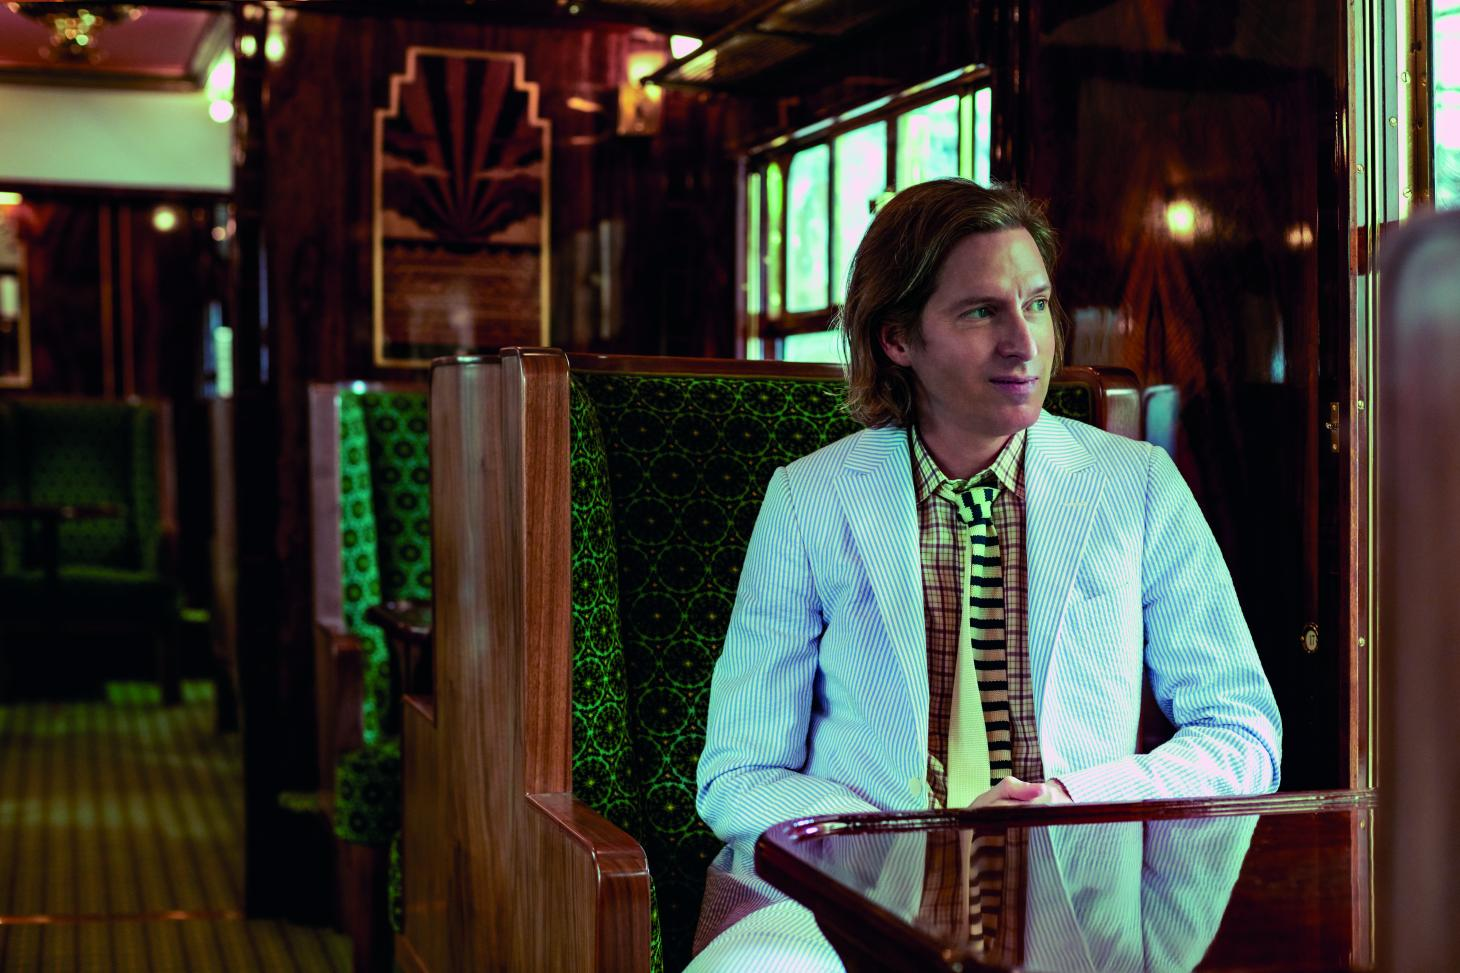 Wes Anderson in the newly restored and renewed British Pullman Cygnus carriage